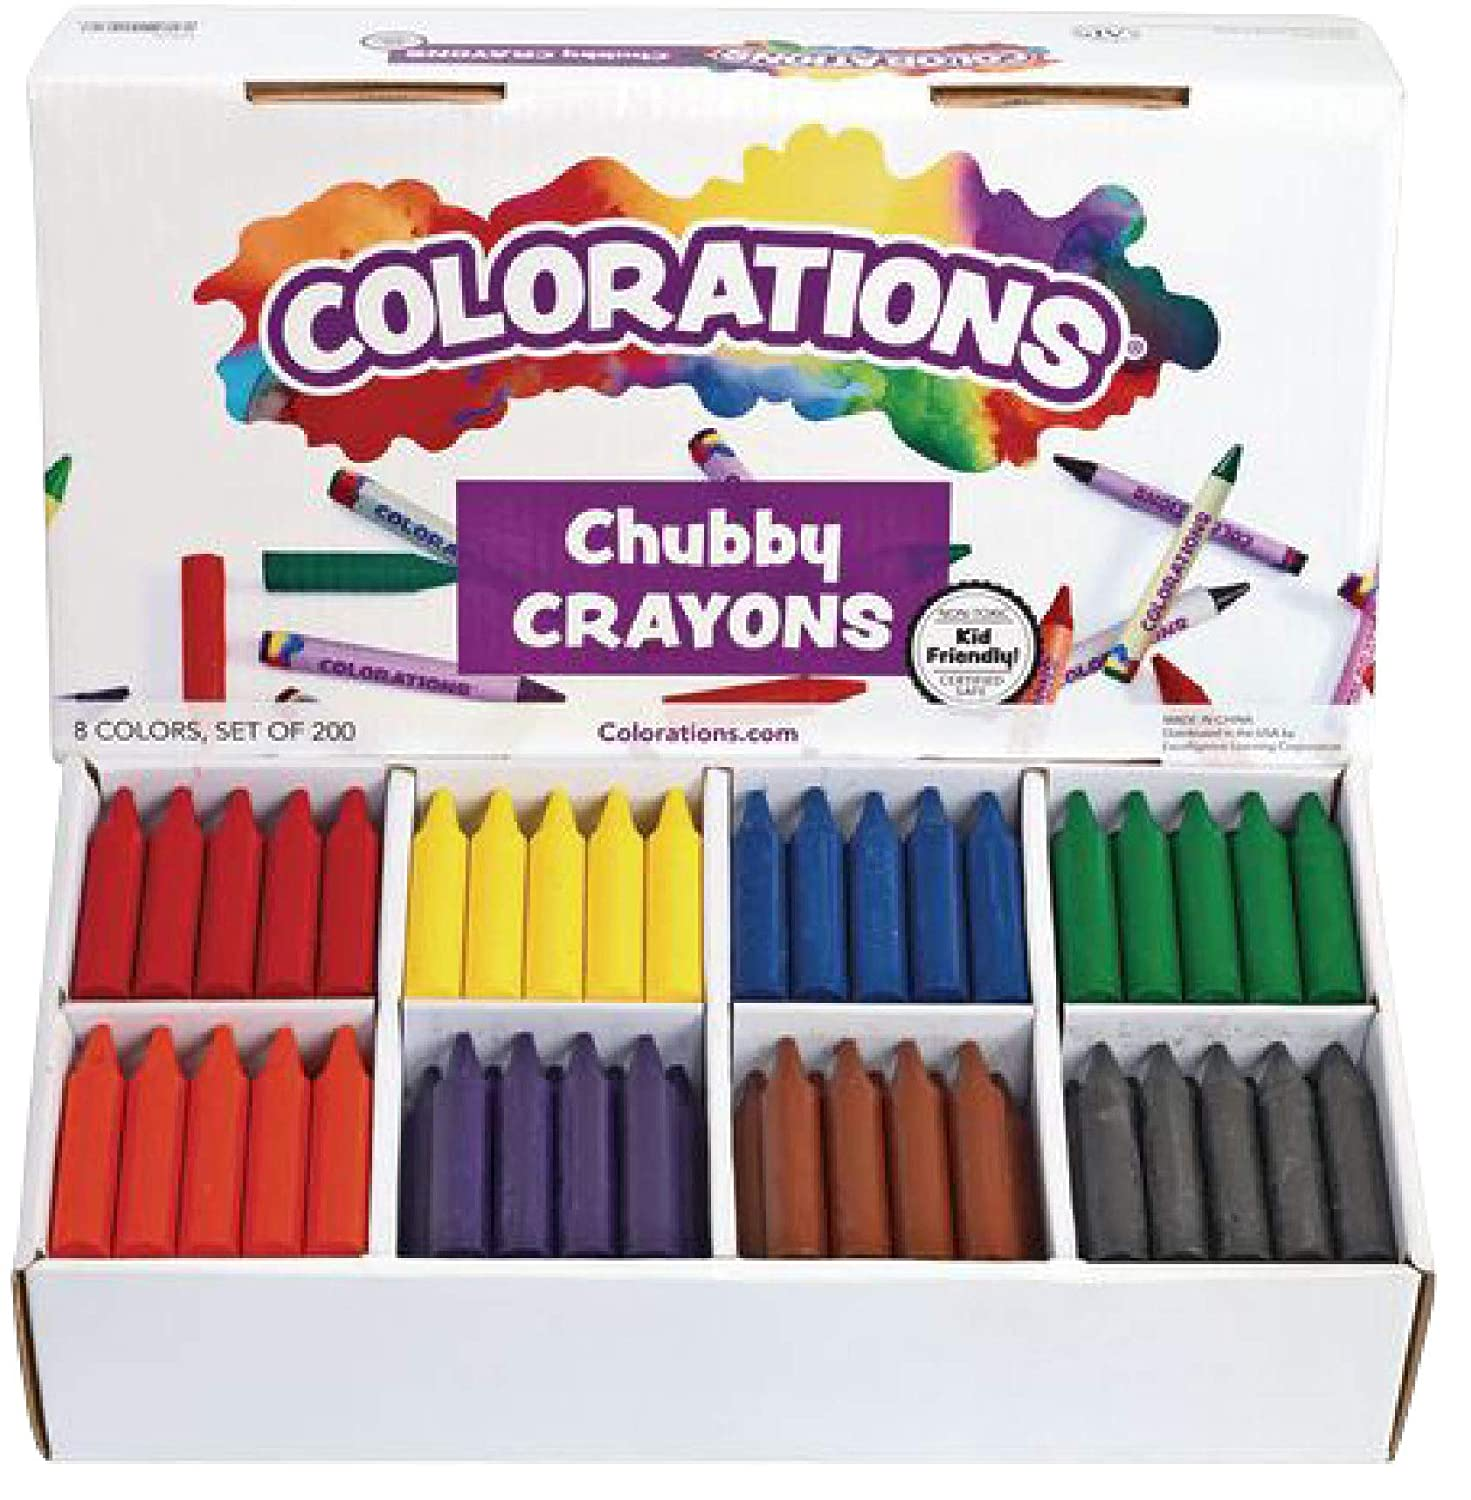 Colorations Chubby Crayons for Kids Set of 200 Rainbow Crayons Classroom Supplies (2-11/16